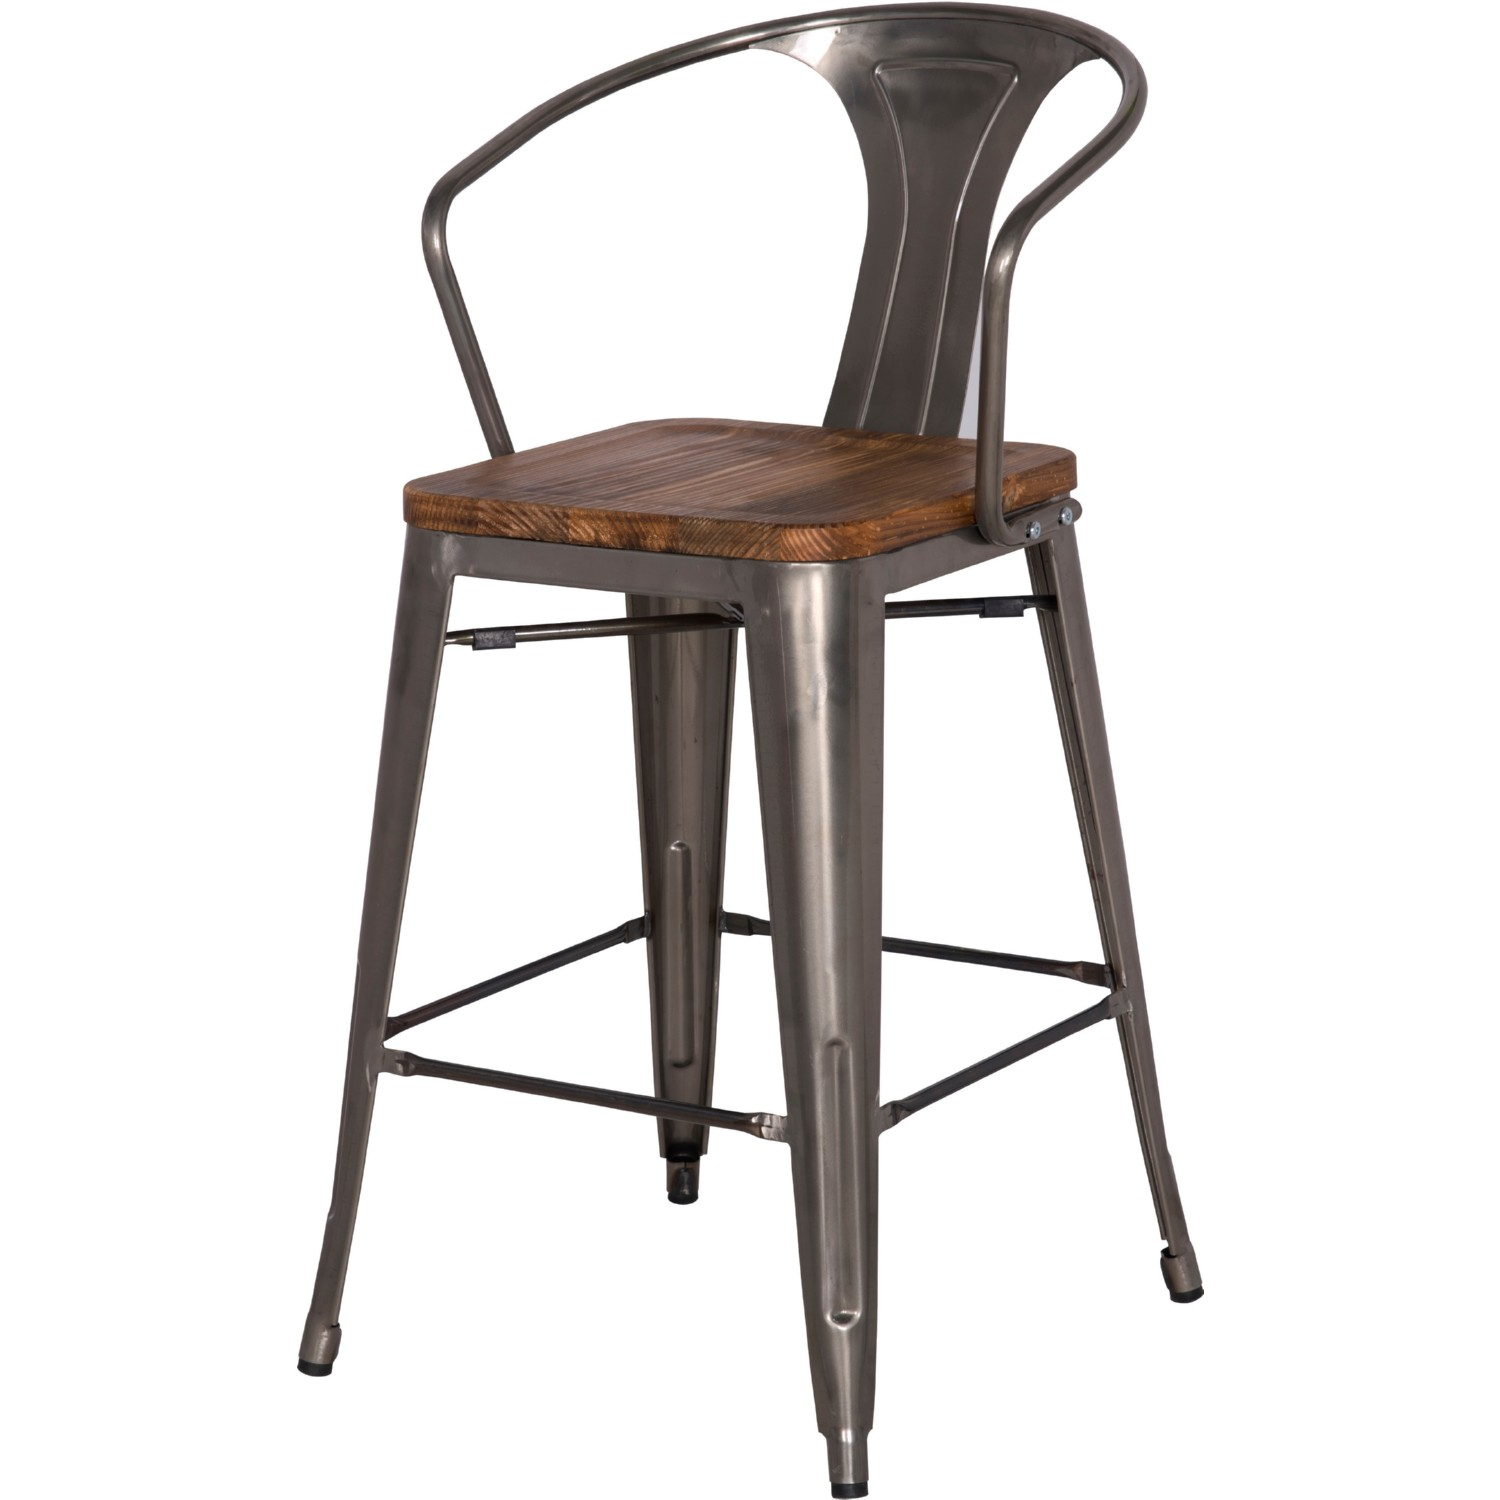 Surprising Metropolis Metal Counter Stool Wood Seat In Gunmetal Powder Coated Steel Set Of 4 By New Pacific Direct Squirreltailoven Fun Painted Chair Ideas Images Squirreltailovenorg